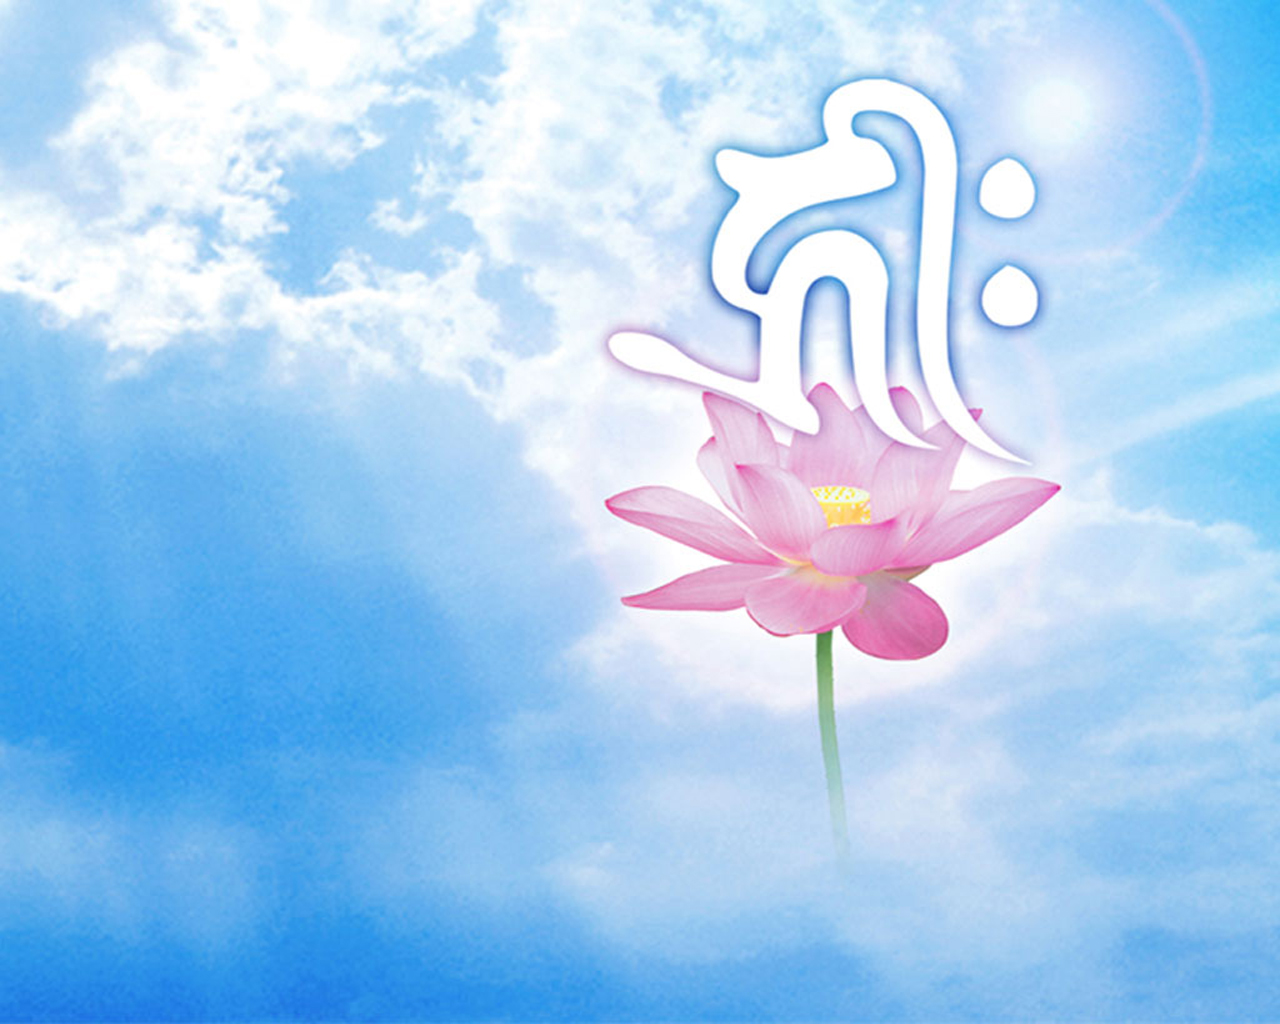 The Above Wallpaper Has Siddham Syllable Hr On A Lotus With Sky Back Drop